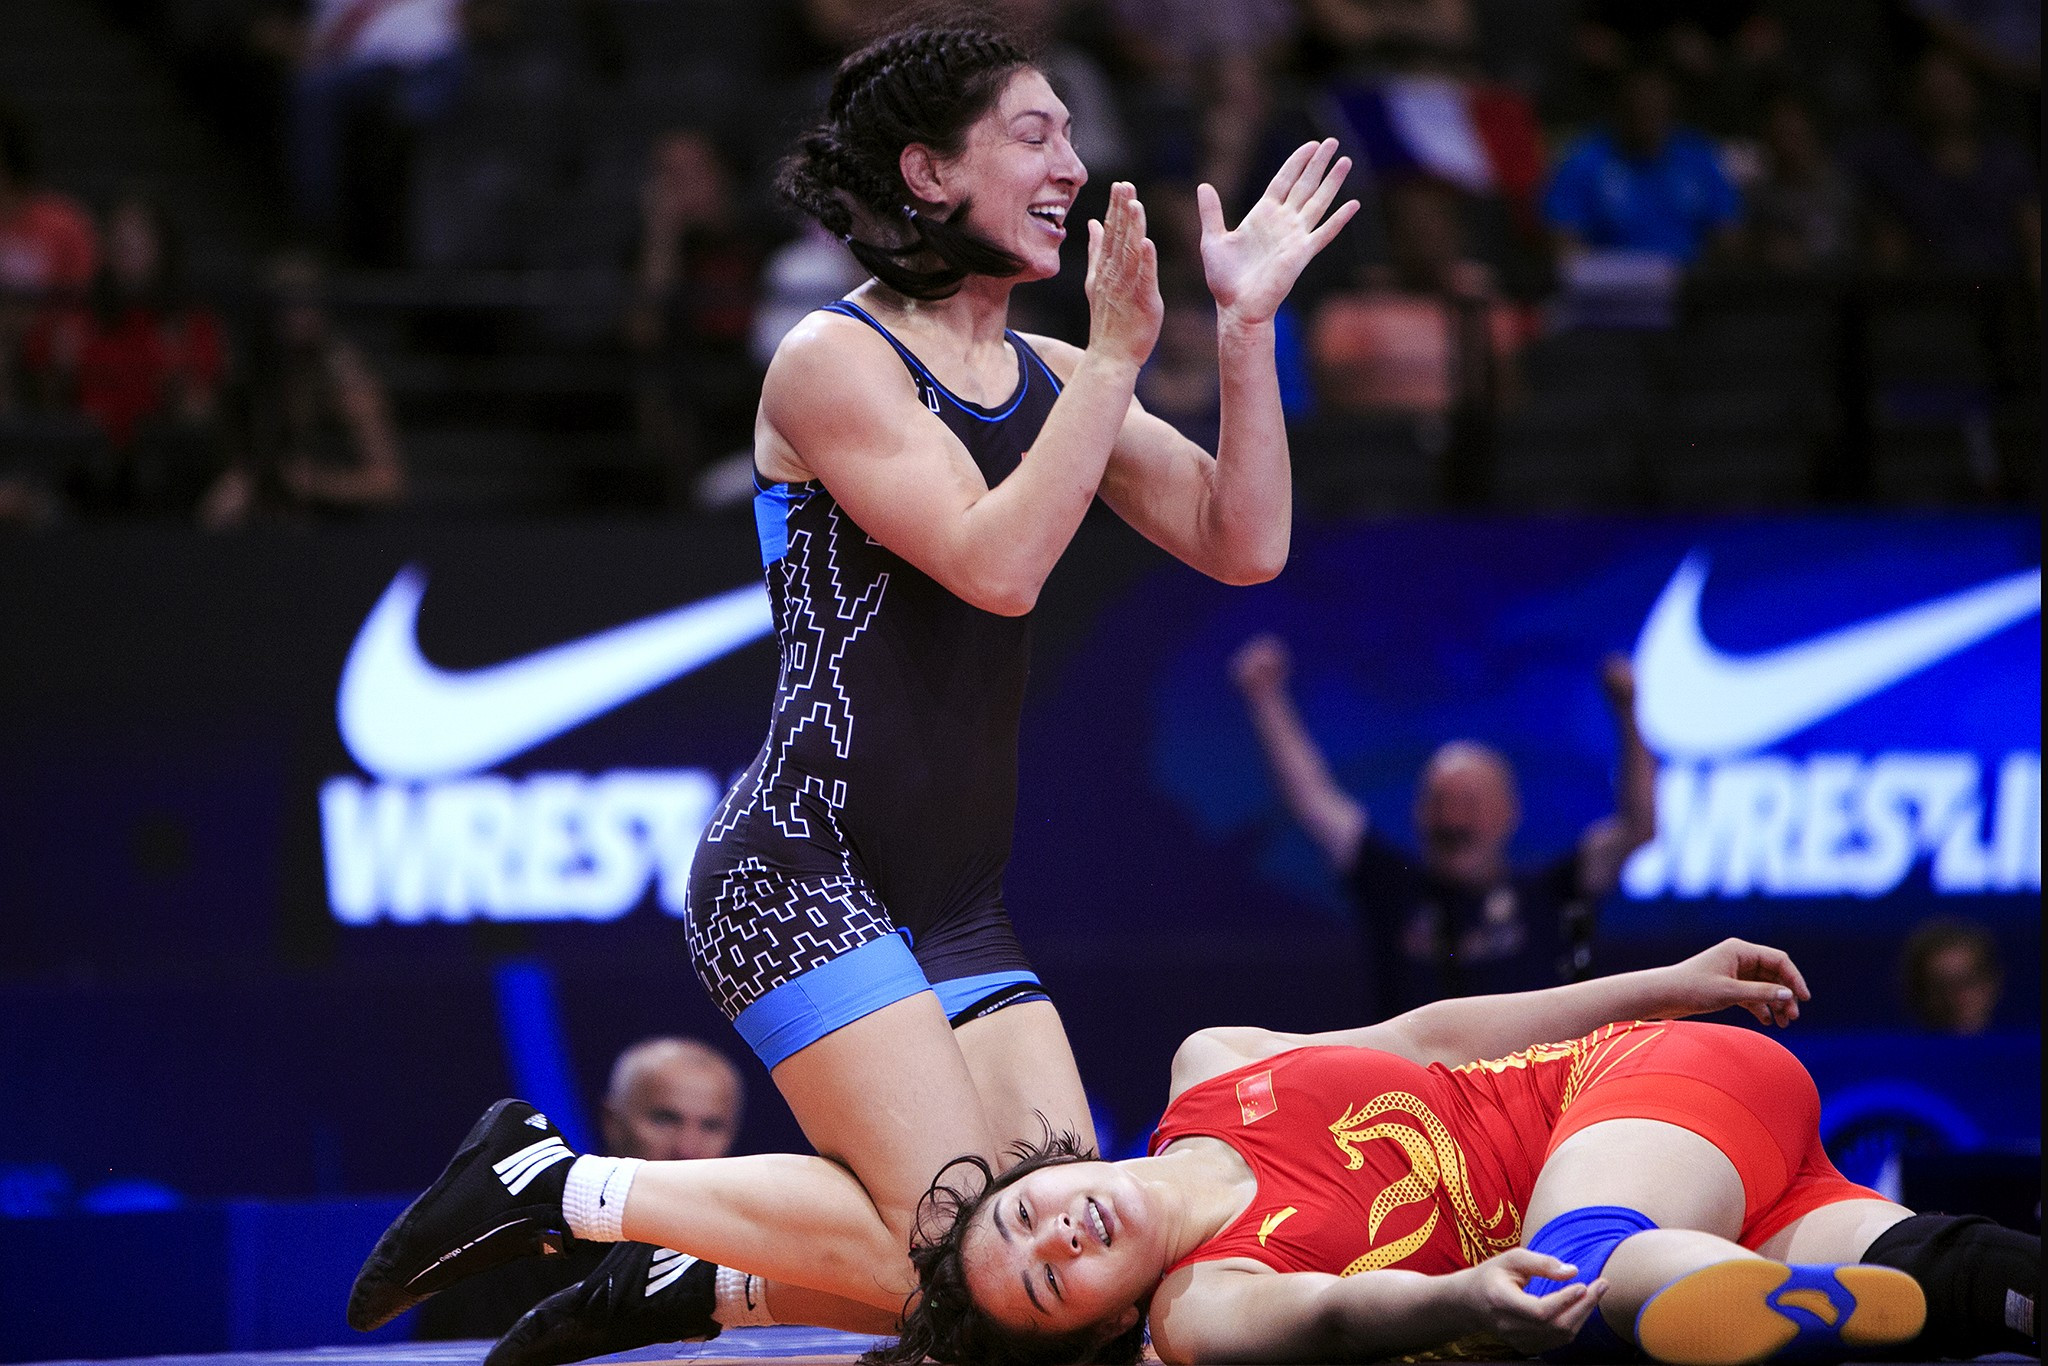 UWW Wrestling World Championships 2017: Day three of competition